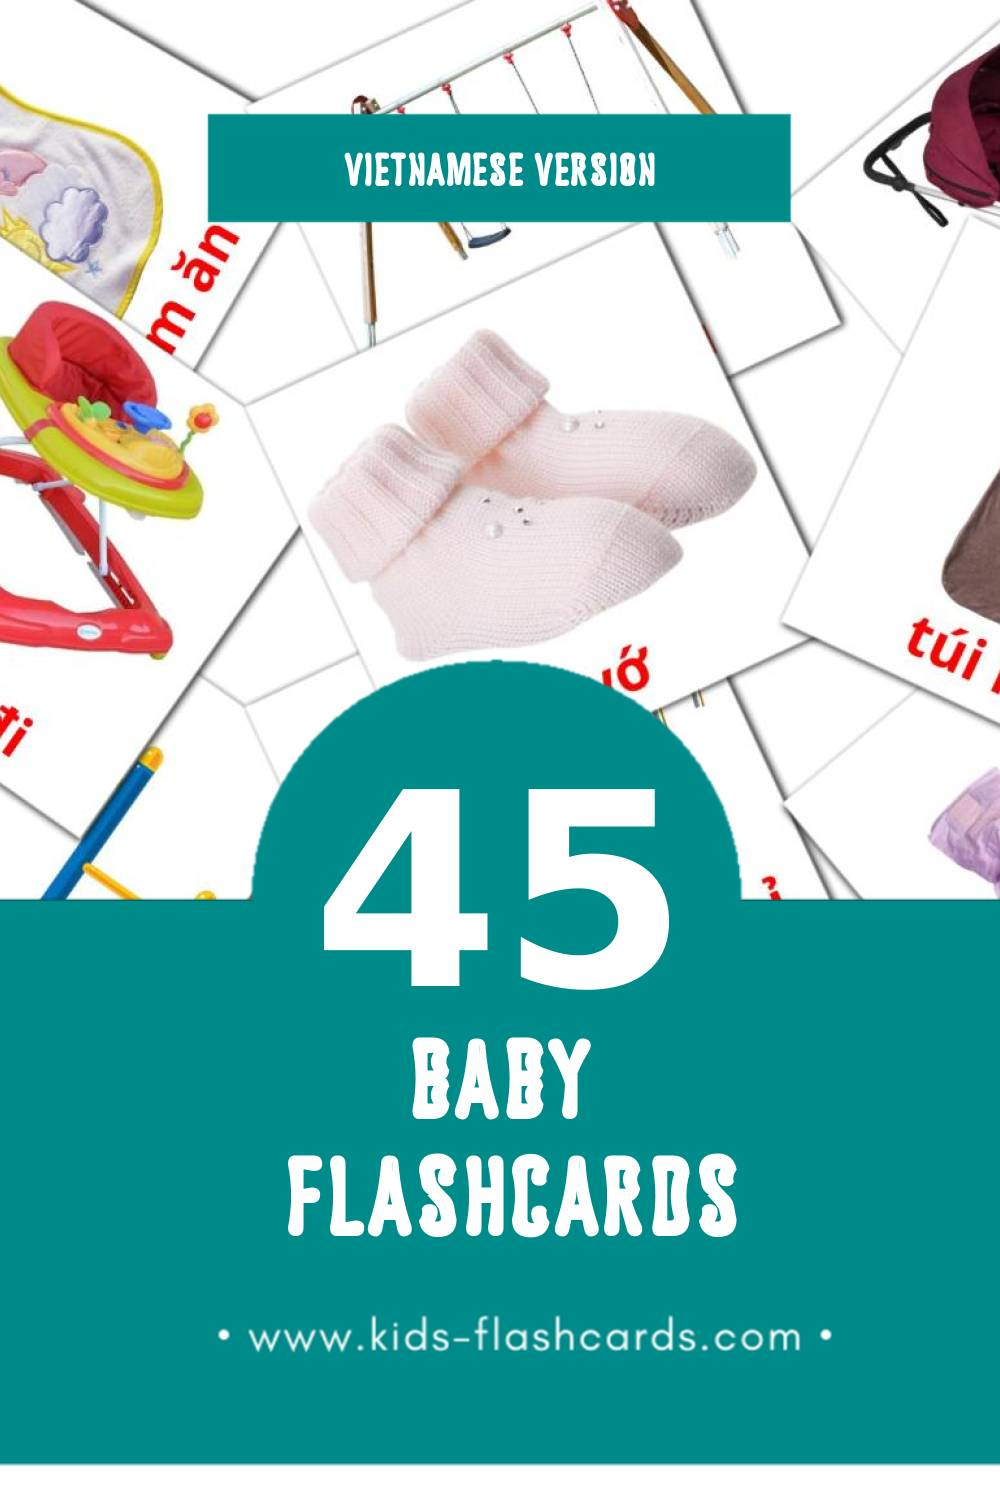 Visual Baybay Flashcards for Toddlers (45 cards in Vietnamese)